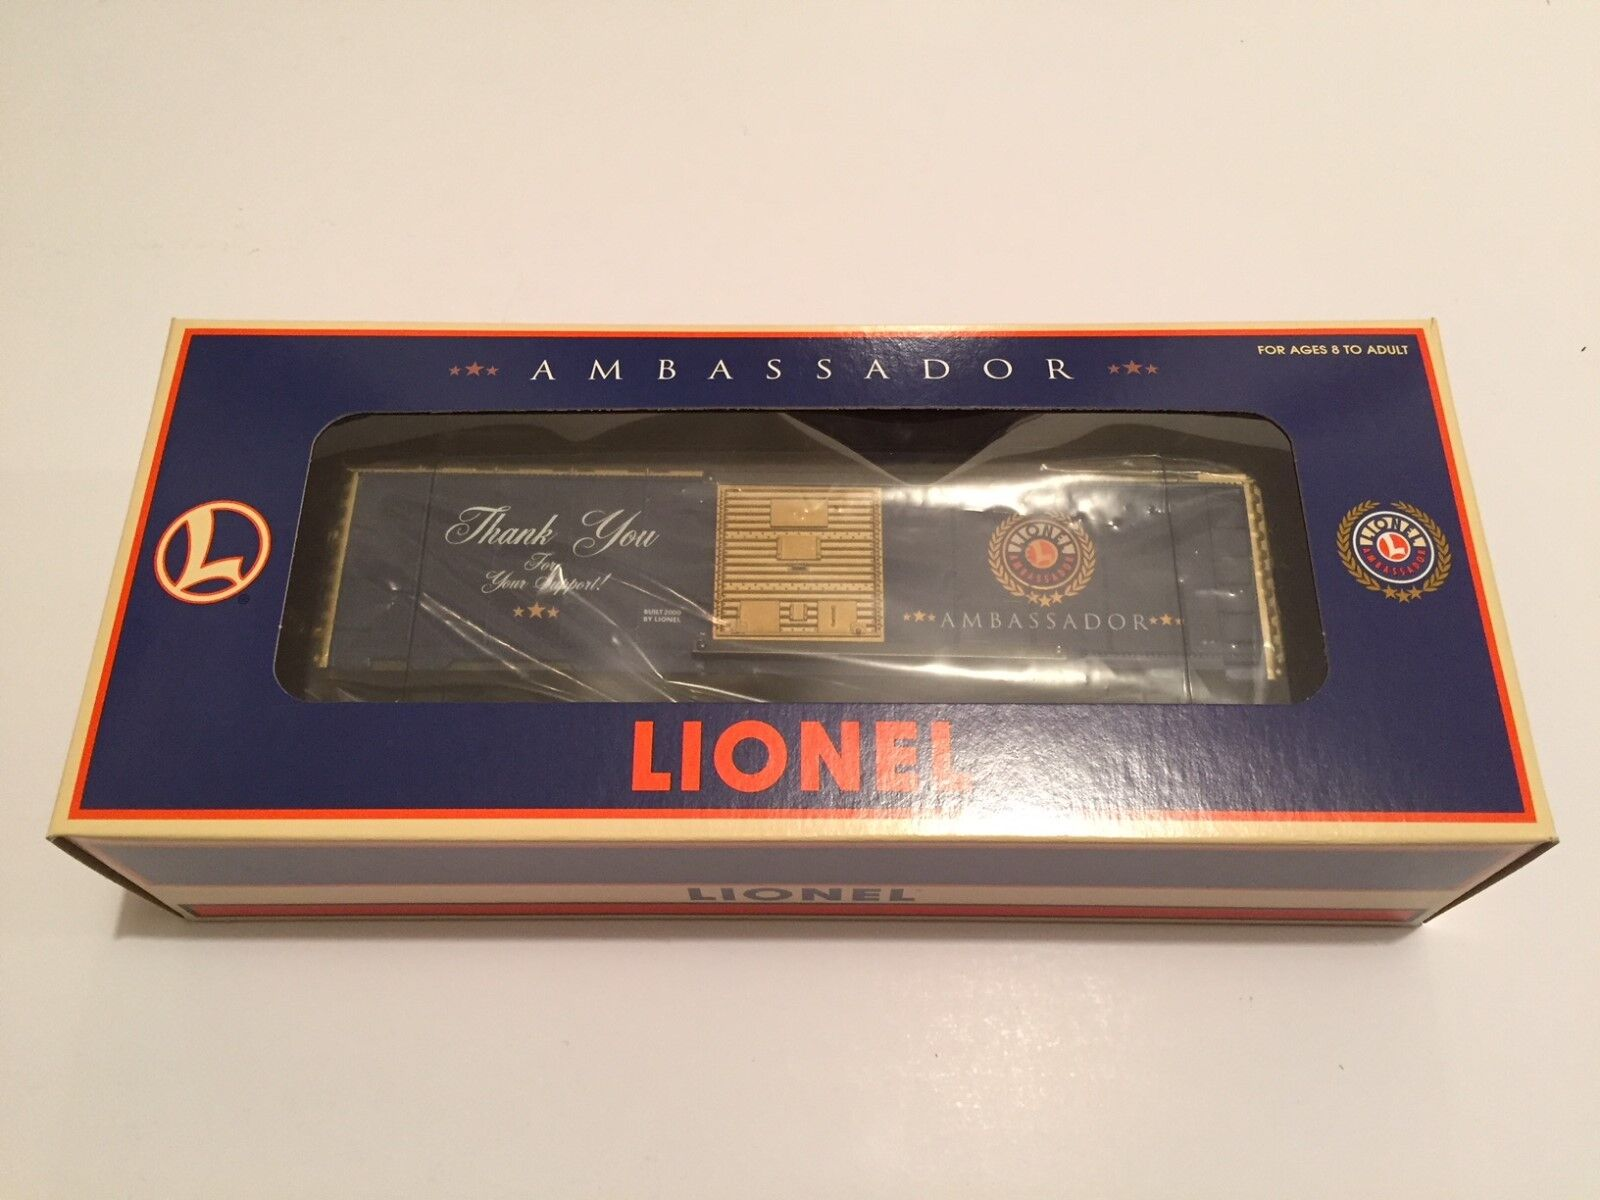 Lionel   16820 Ambassador  Thank You  Box Car